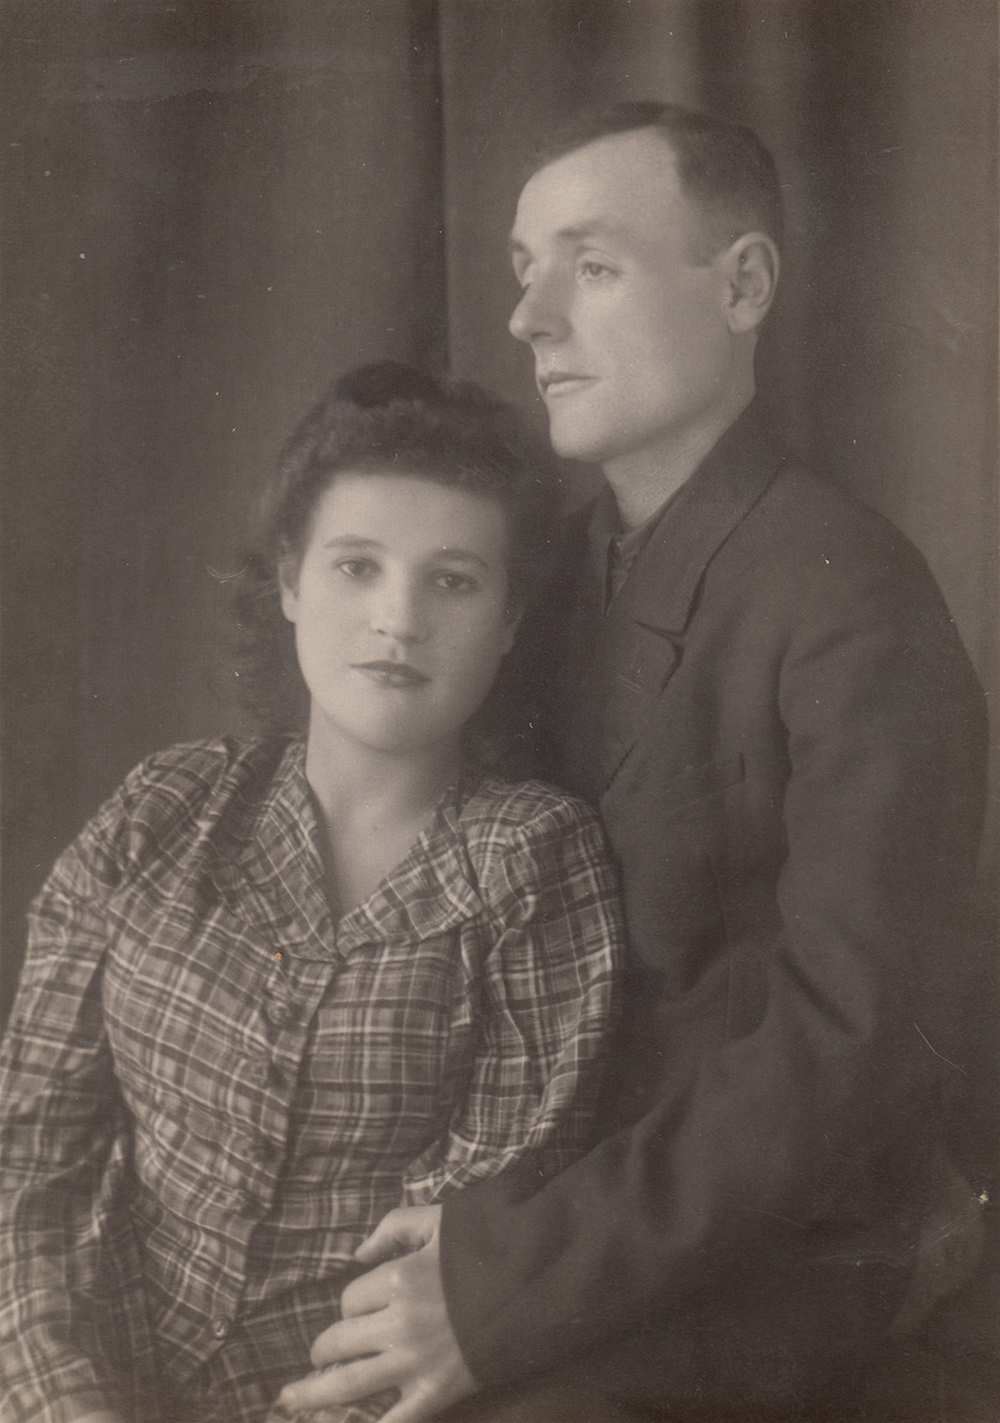 Photograph of Asya and Mikhail, sent to Mikhail's sister Tsilya on January 31, 1949. Tsilya passed away later that year, and Asya and Mikhail adopted her surviving son.